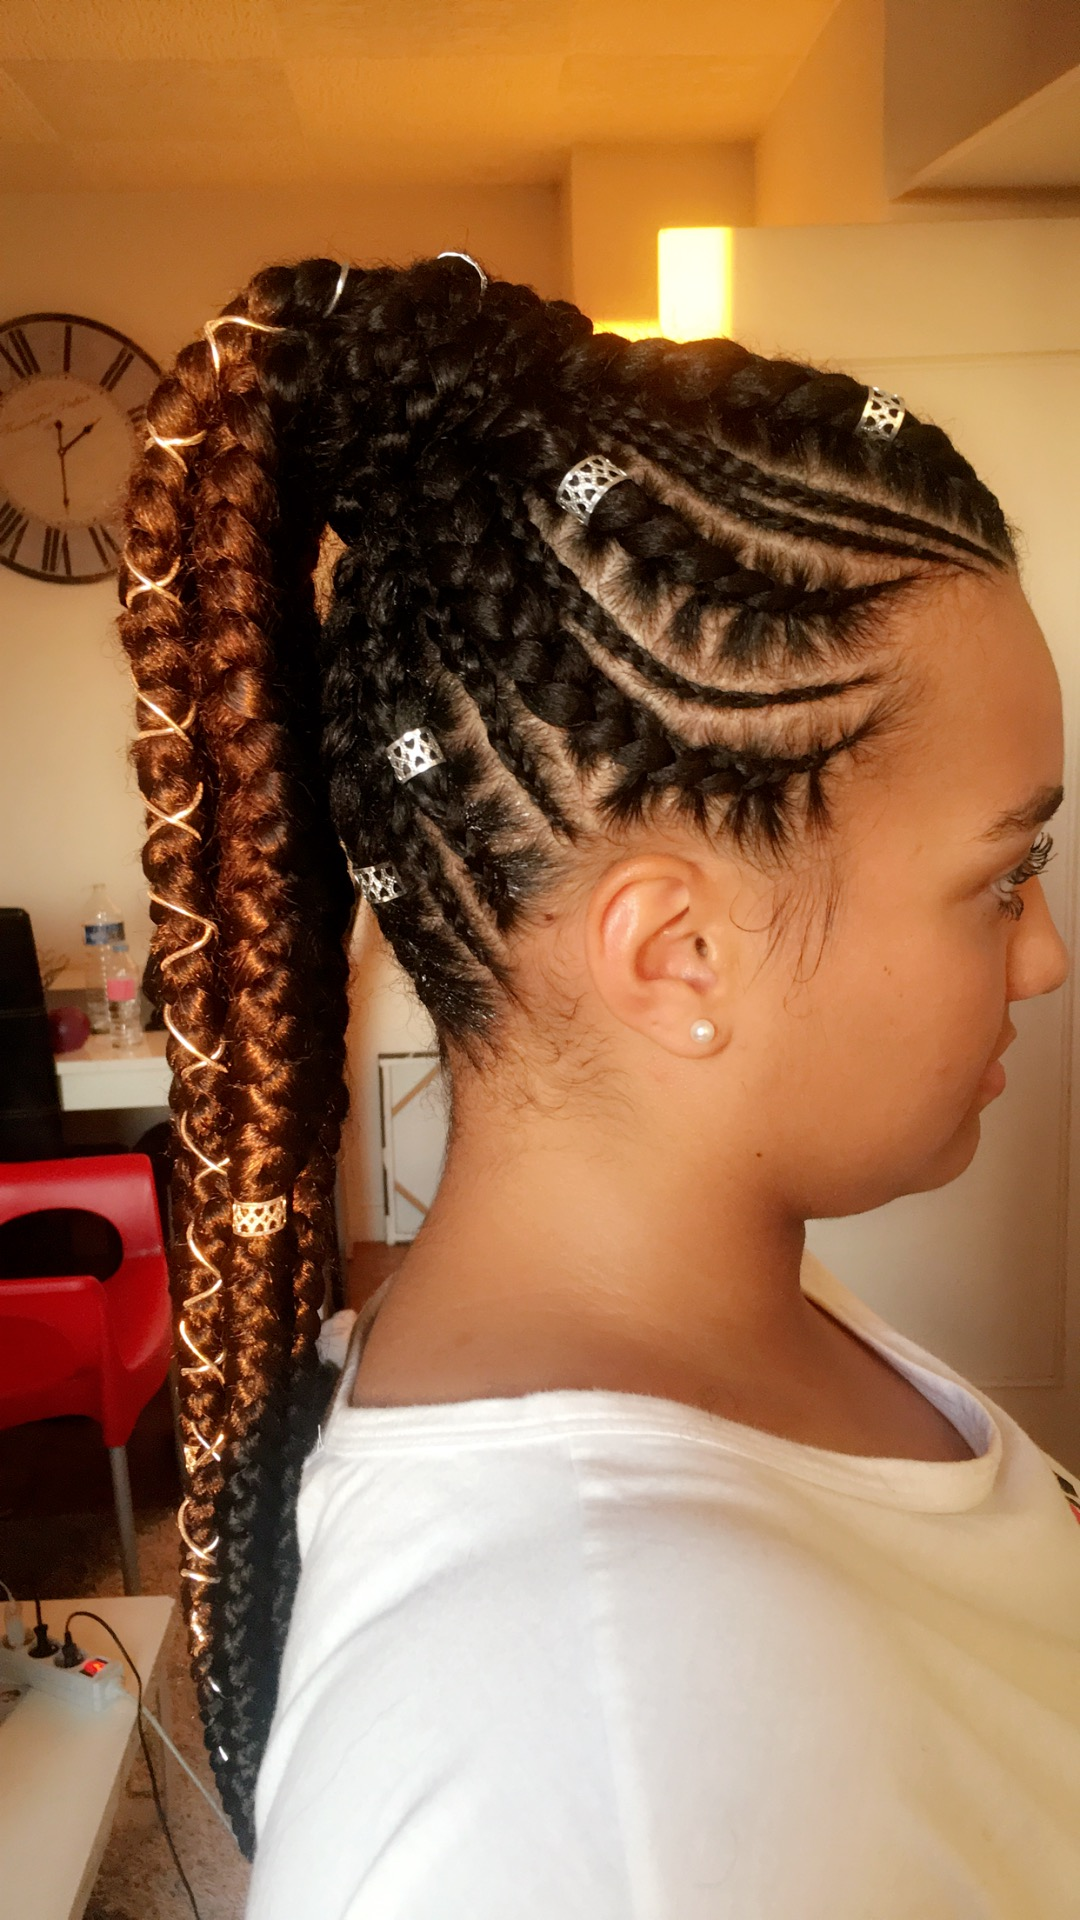 salon de coiffure afro tresse tresses box braids crochet braids vanilles tissages paris 75 77 78 91 92 93 94 95 KYJDMLSE